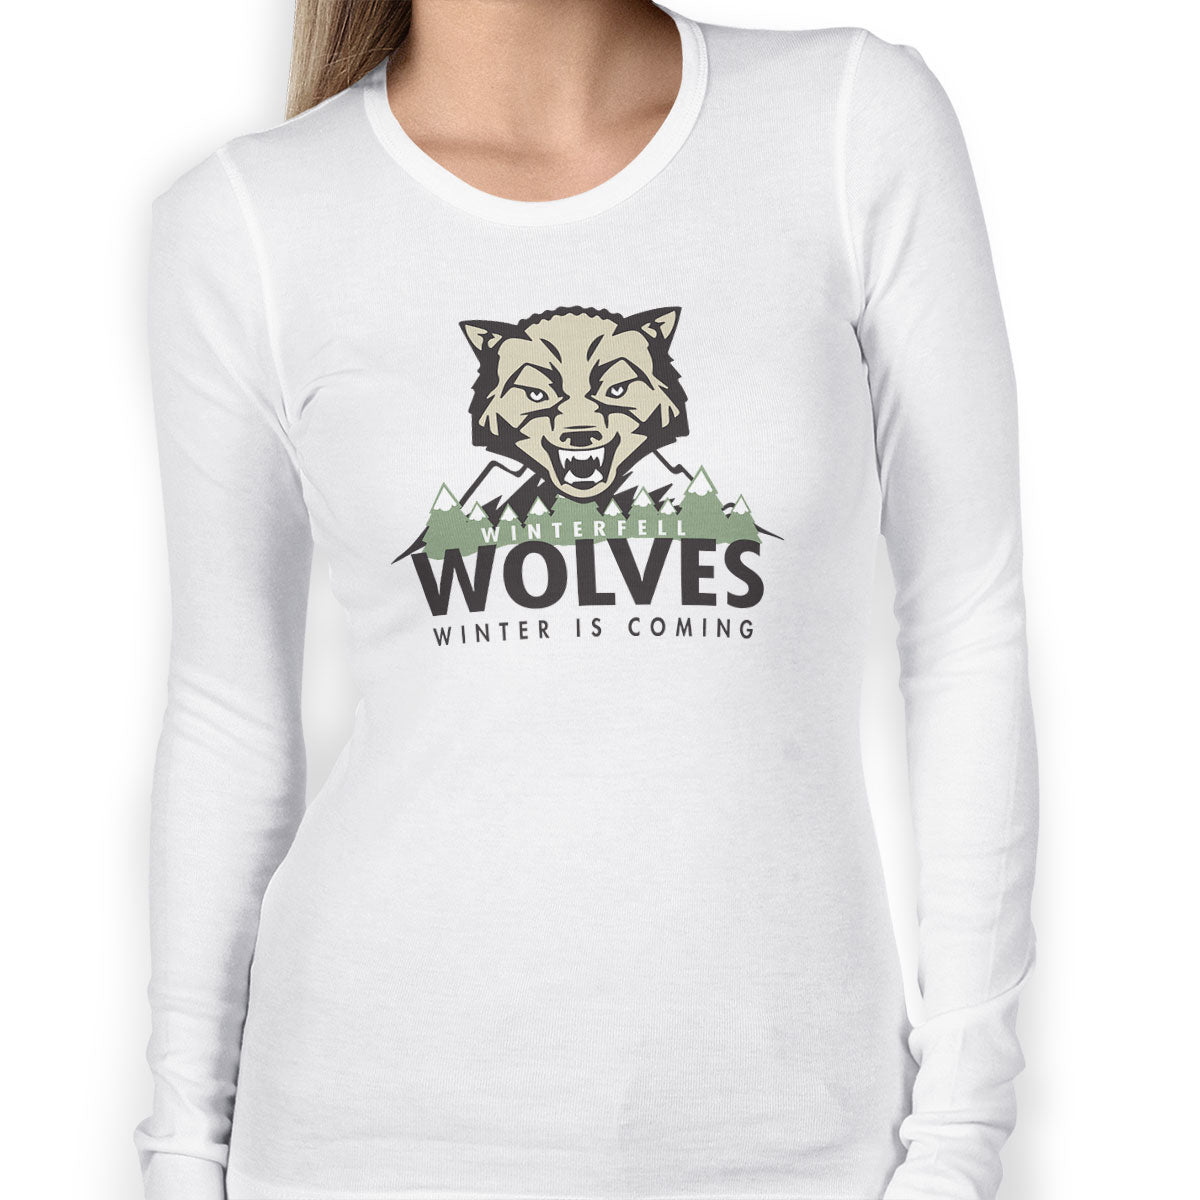 Winterfell Wolves Women's Long Sleeve Tee